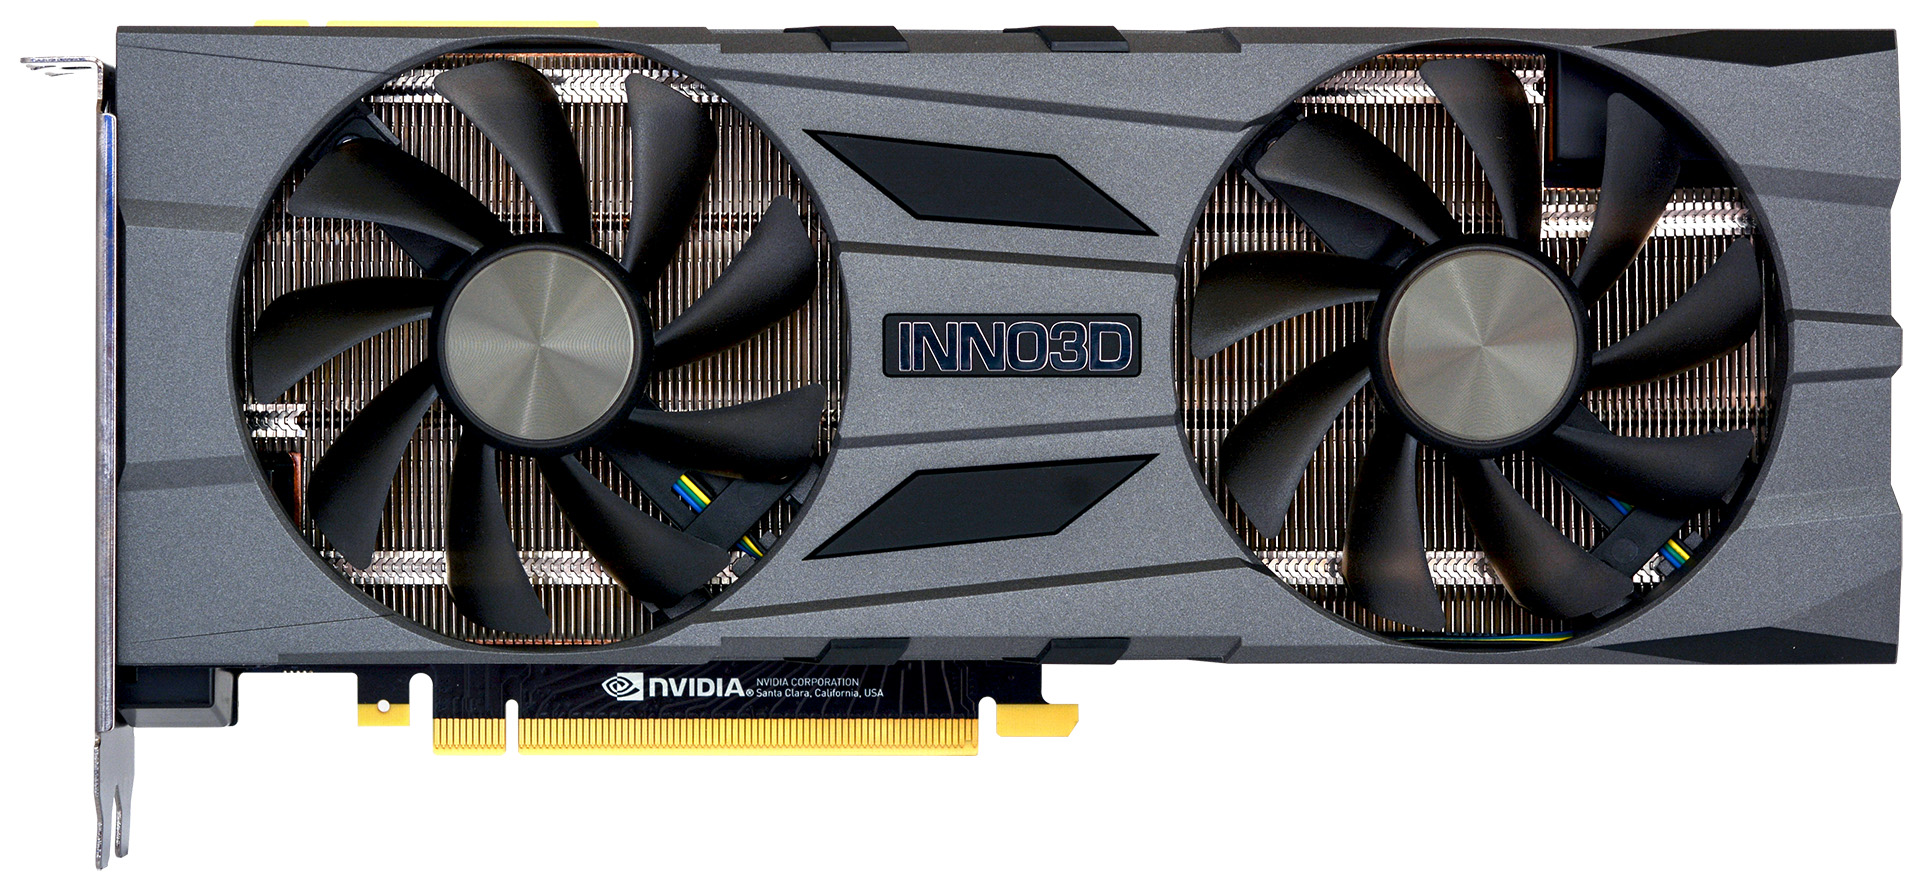 Review: Inno3D GeForce RTX 2070 Super Twin X2 OC - Graphics